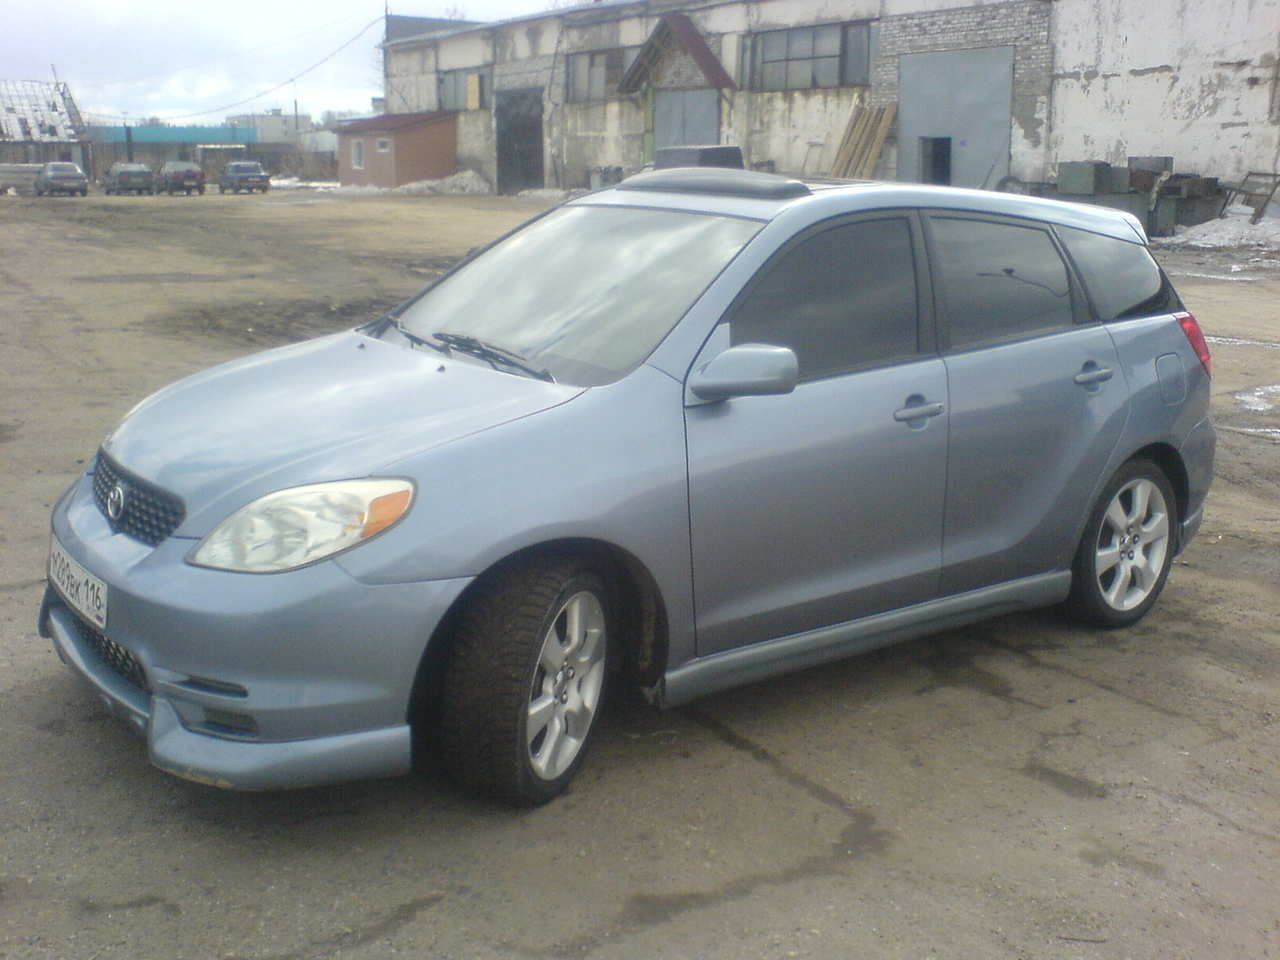 2002 toyota matrix pictures gasoline ff manual for sale. Black Bedroom Furniture Sets. Home Design Ideas